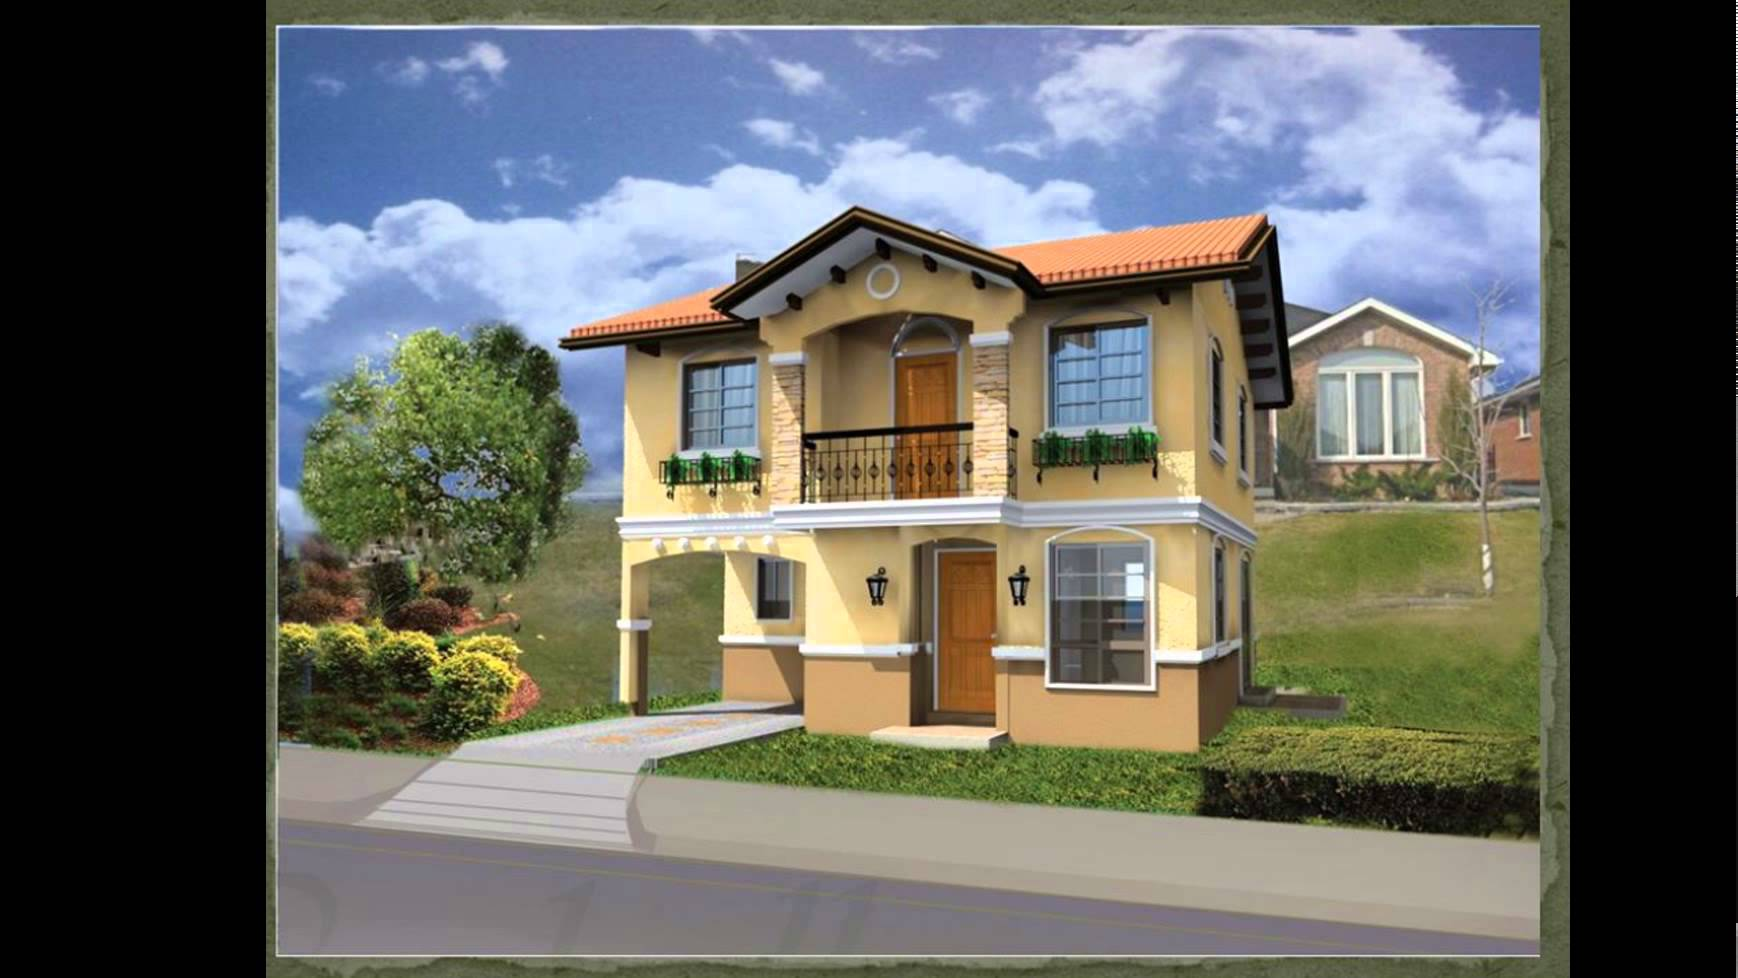 house design ideas small house design | small